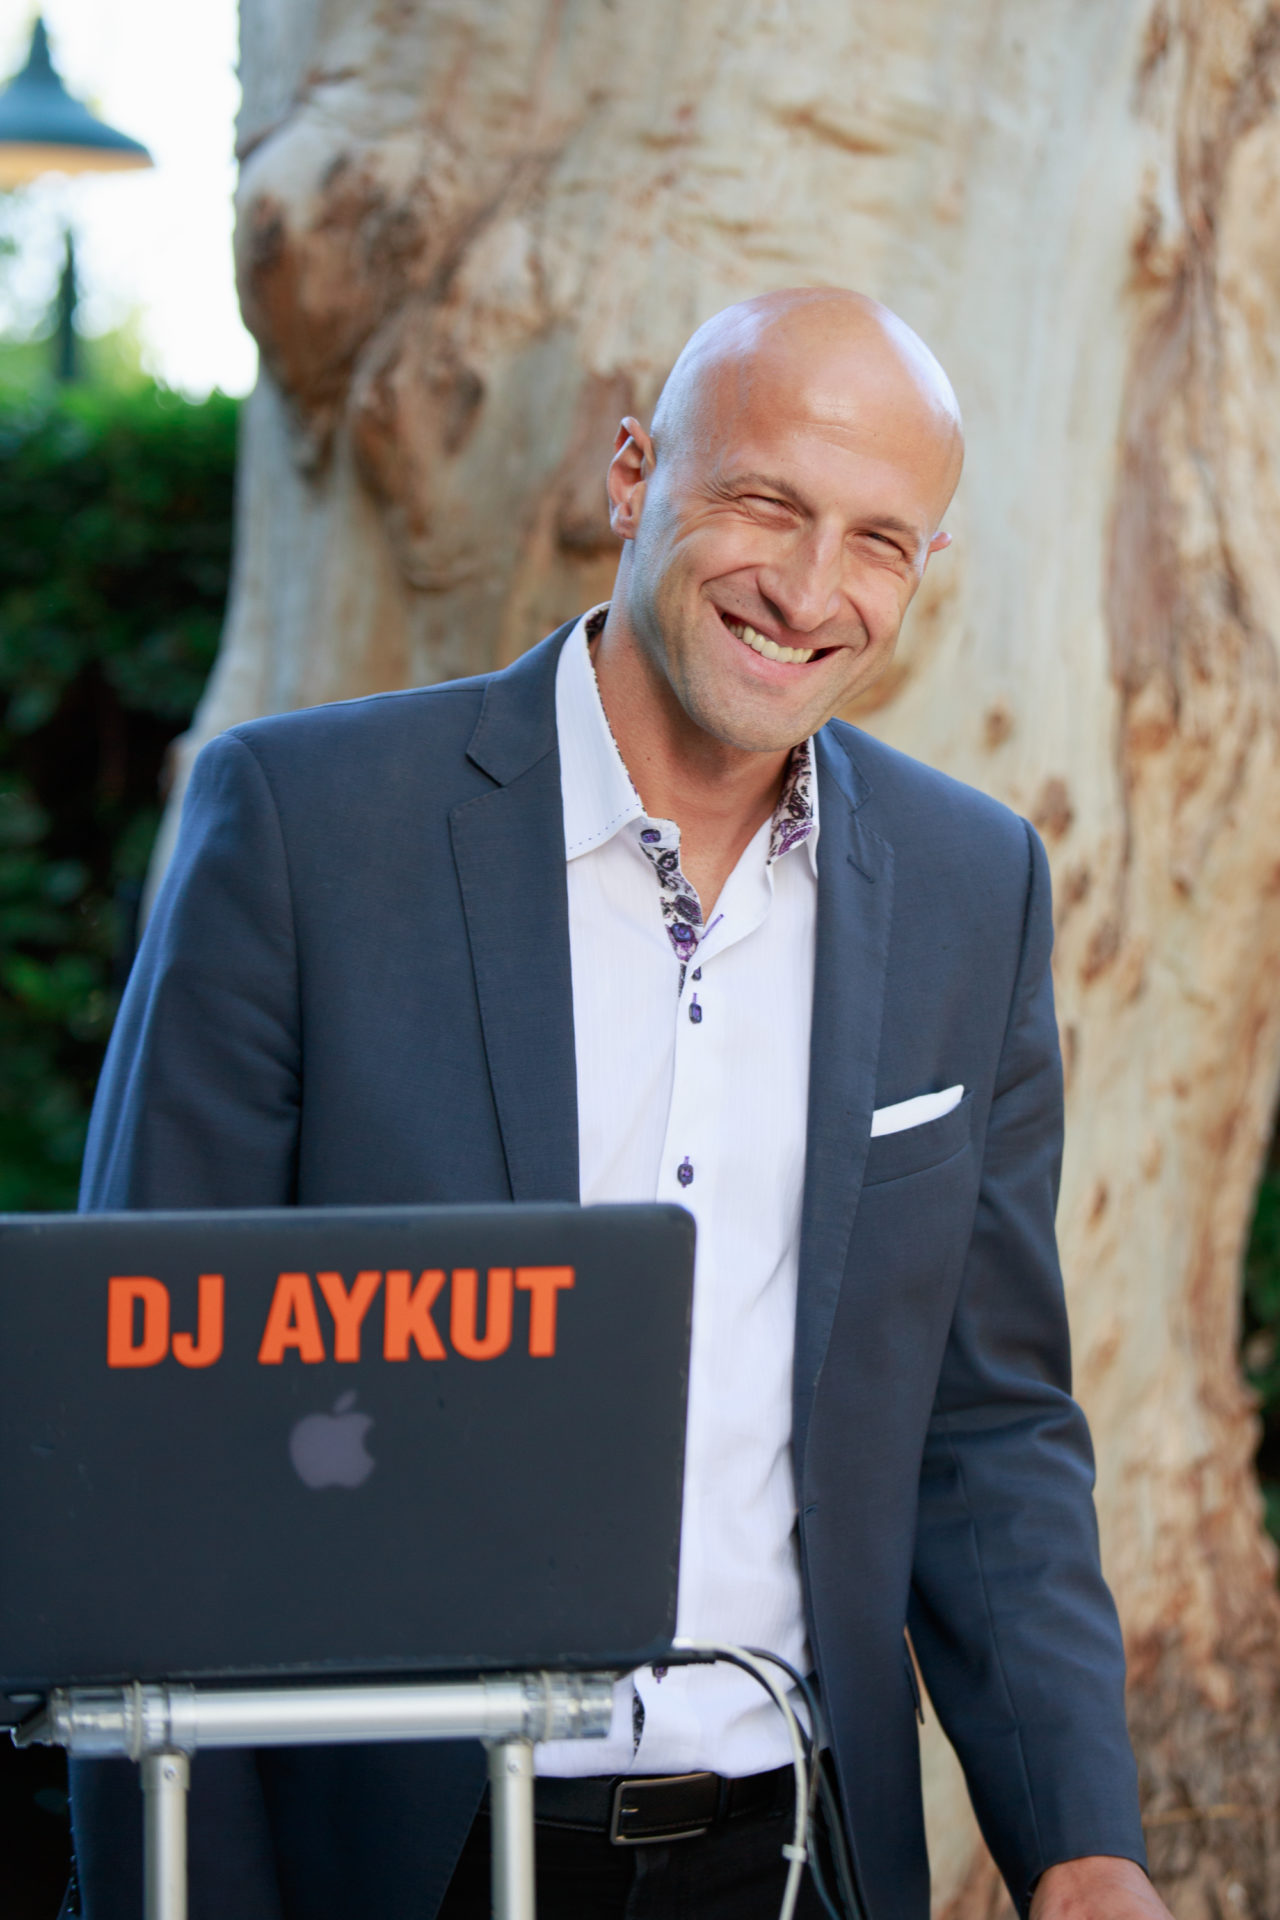 DJ Aykut at Cline Cellars